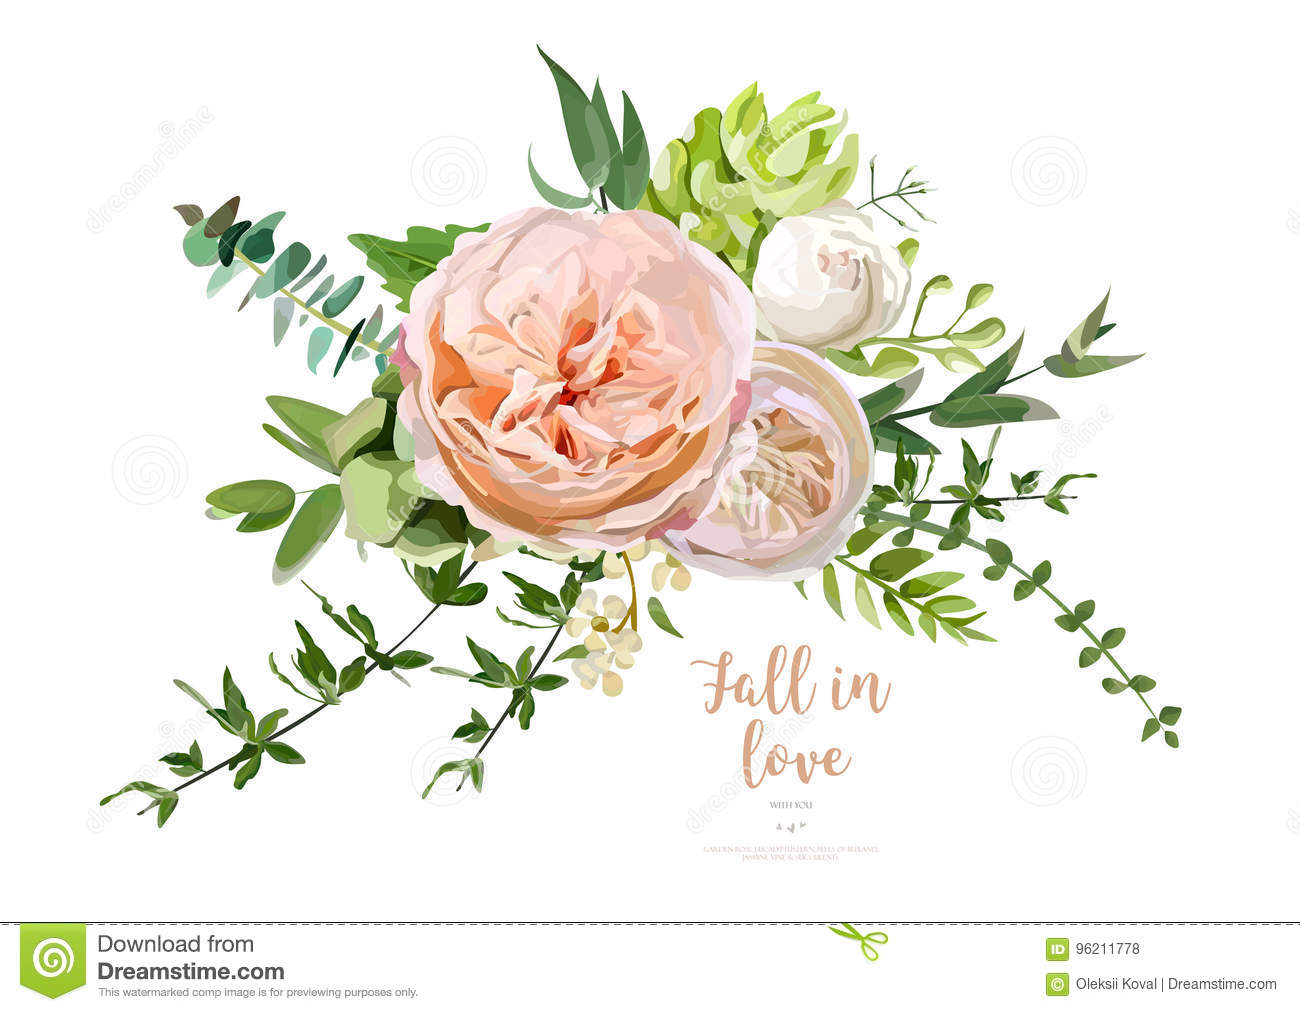 Flower Bouquet Vector Design Object Element Peach Pink Rose E